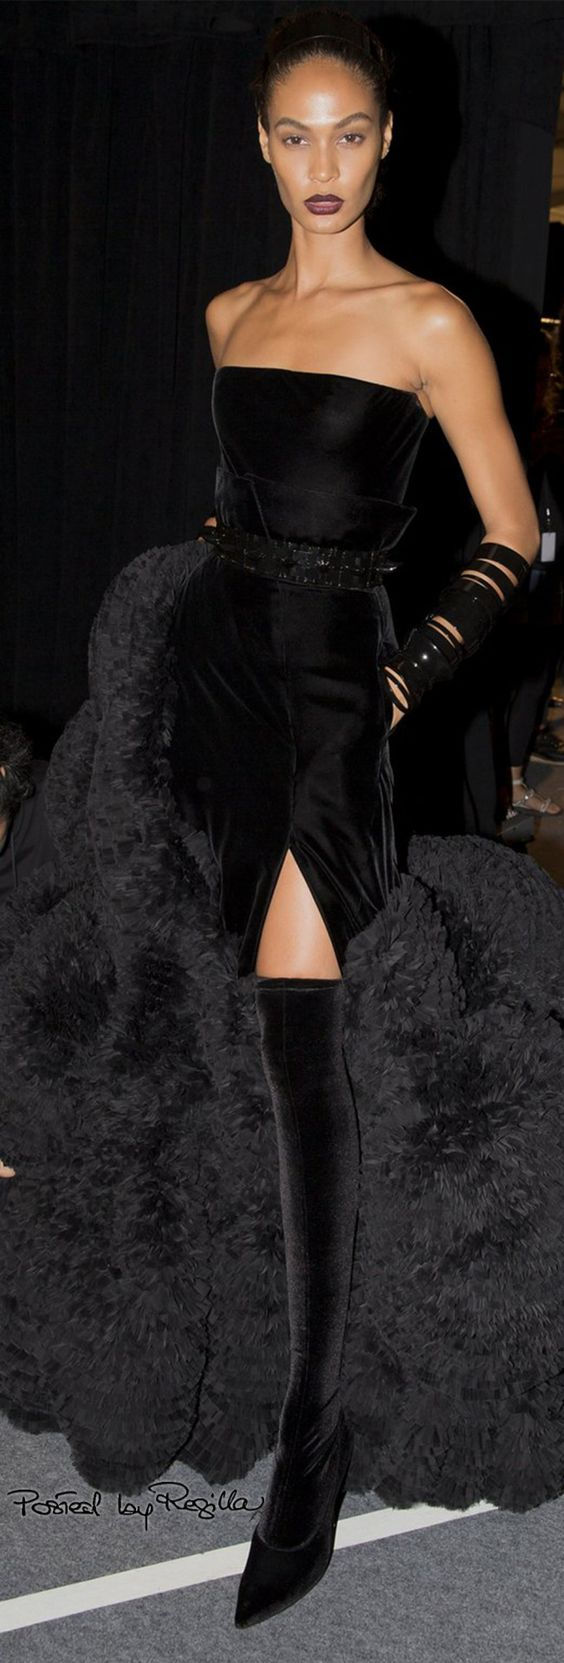 Black long dress by Givenchy, Spring 2016